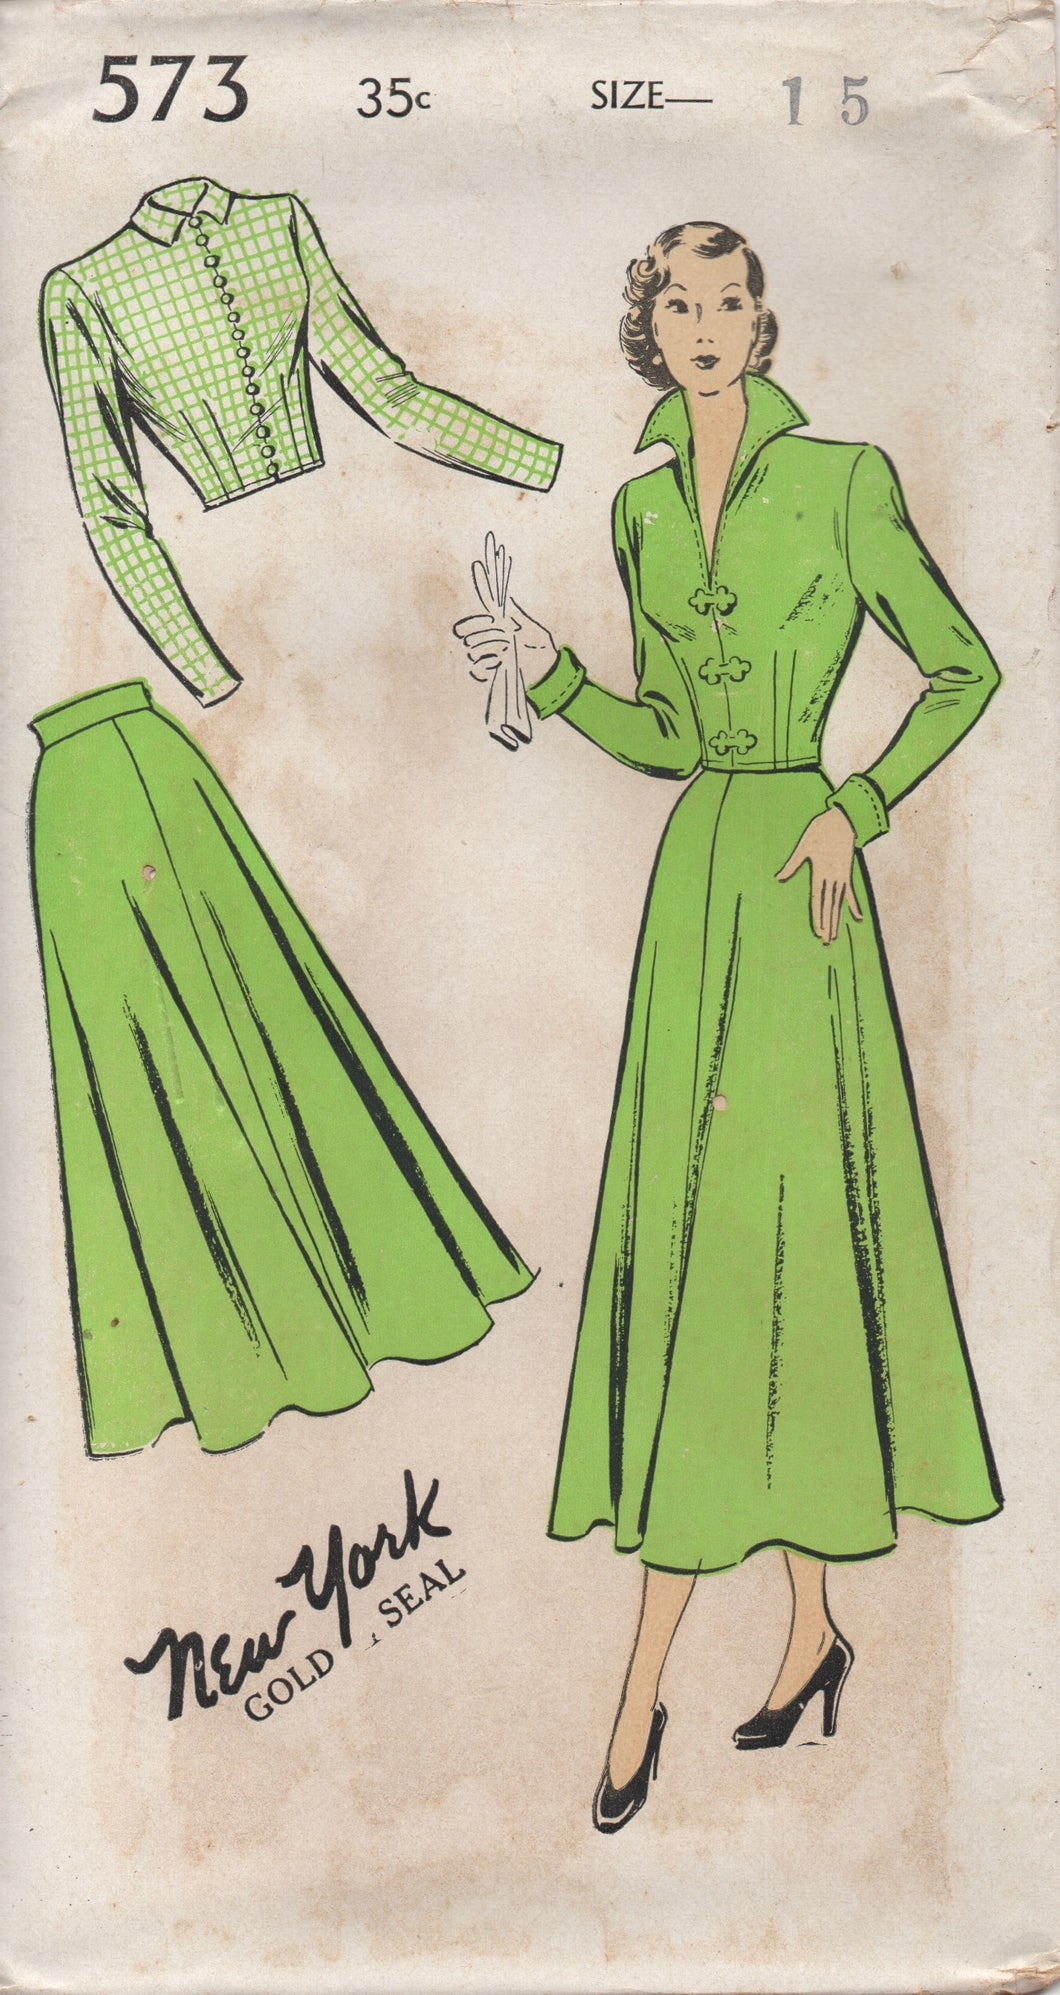 1940's New York Two-Piece Suit with Jacket with Tall Collar and A line Skirt Pattern - Bust 33